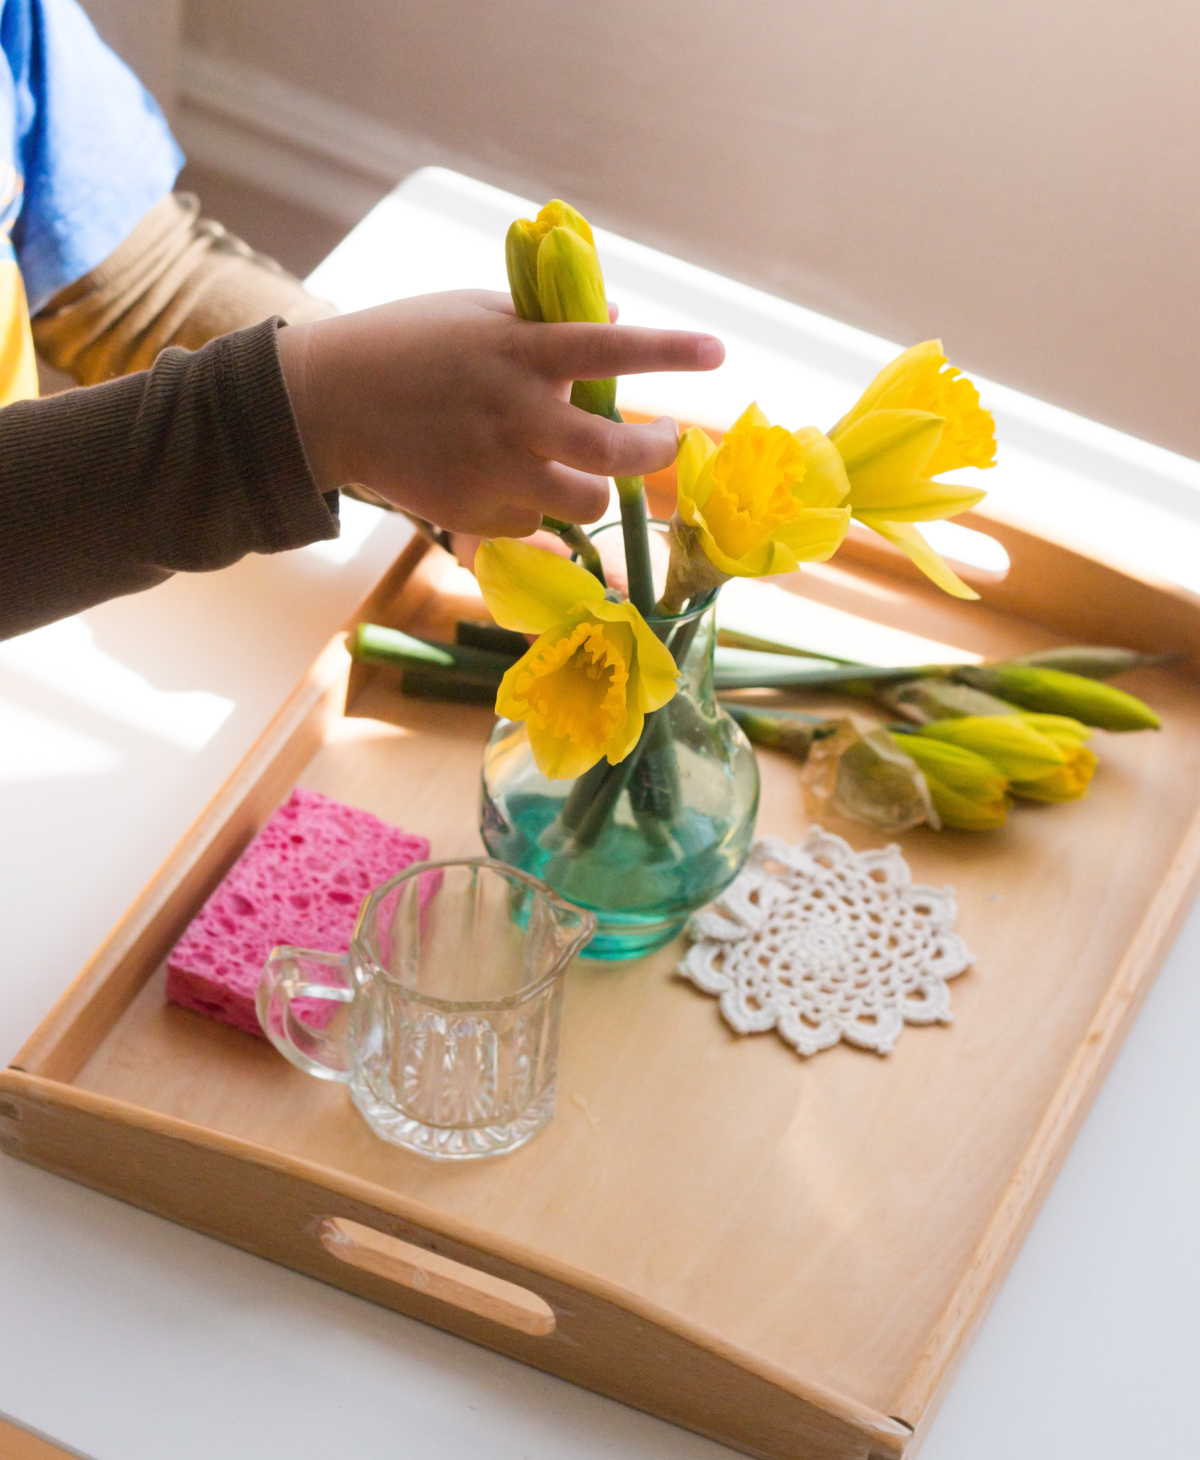 daffodils_montessori_flower_arranging2.jpg